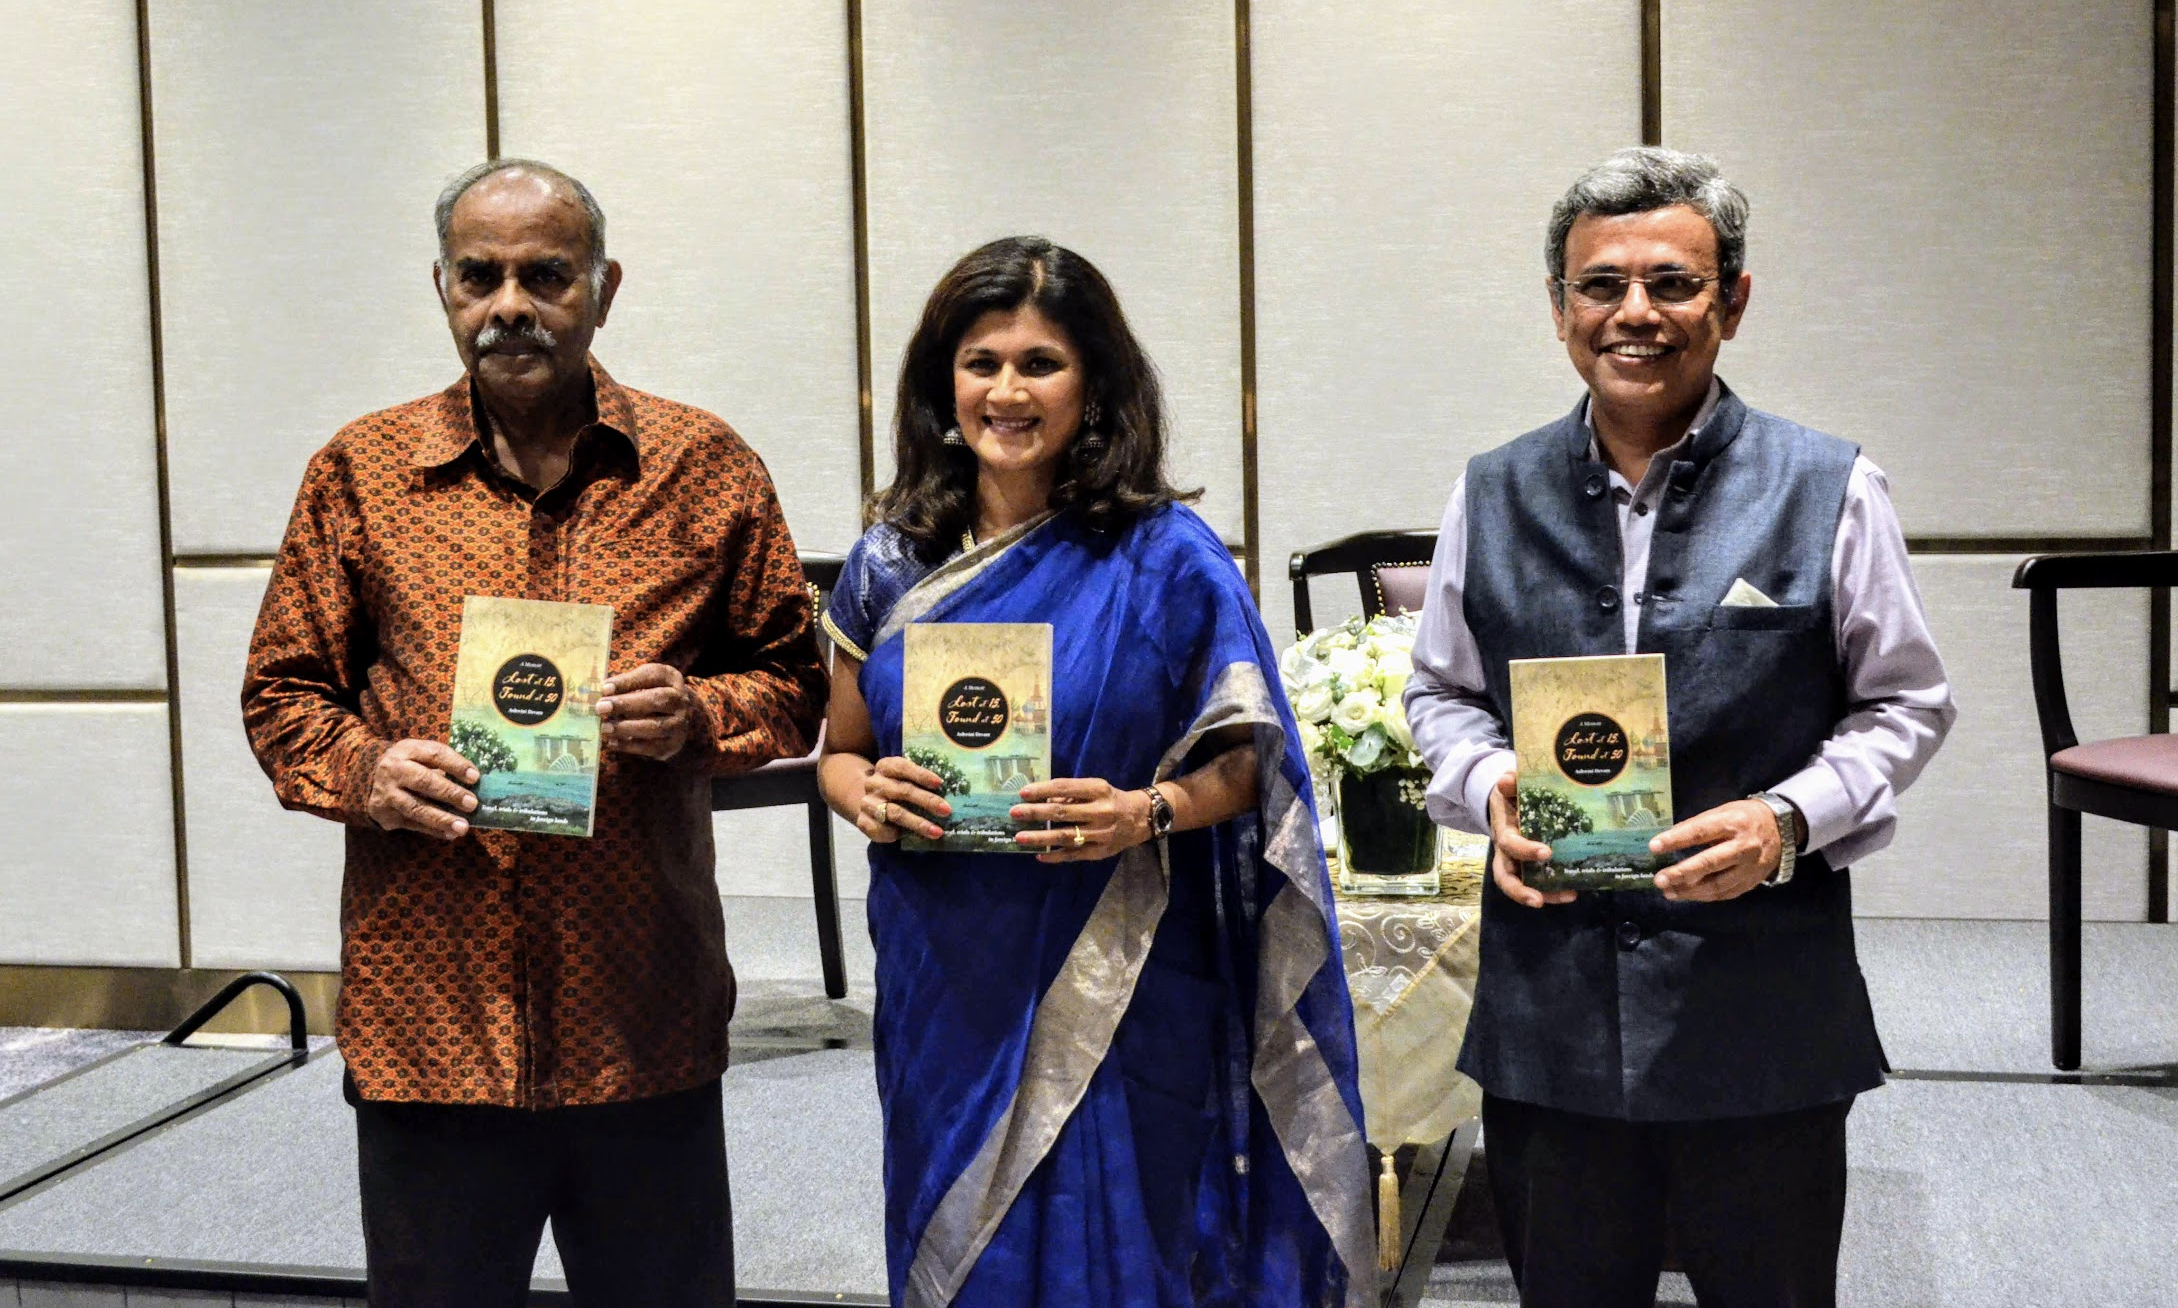 Ashwini Devare author of Lost at 15, Found at 50 flanked by  High Commissioner of India to Singapore, Jawed Ashraf to her left and ex-diplomat Ambassador Krishnasamy Kesavapany Photo: Connected to India